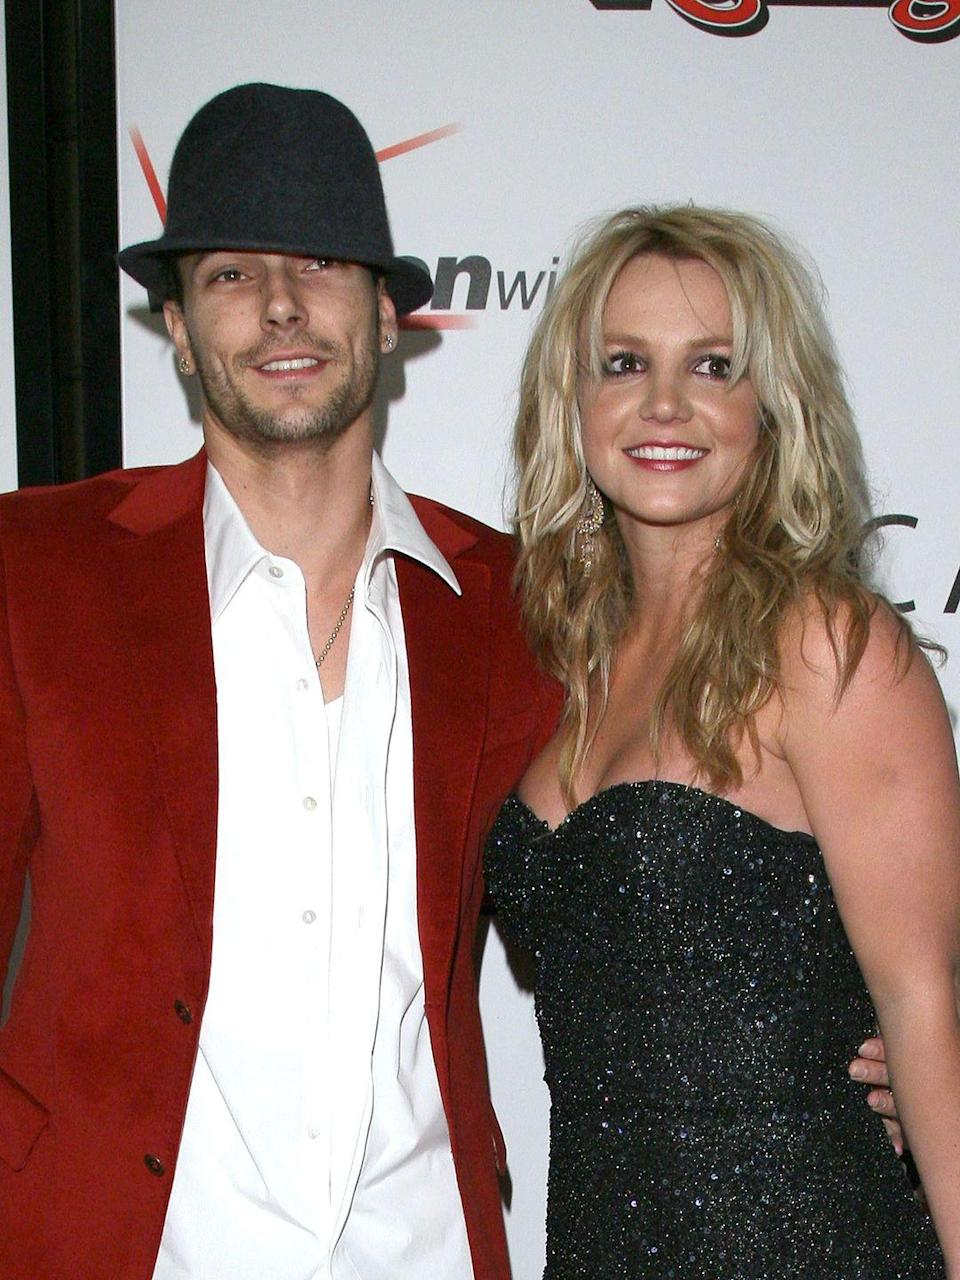 """<p>Britney Spears invited backup dancer Kevin Federline on tour with her in Europe and popped the question. Their <a href=""""http://www.usmagazine.com/celebrity-news/news/britney-spears-and-kevin-federline-10th-wedding-anniversary-2014199"""" rel=""""nofollow noopener"""" target=""""_blank"""" data-ylk=""""slk:wedding"""" class=""""link rapid-noclick-resp"""">wedding</a> took place on September 18, 2004. The pair were married for two years, and share two sons together. Spears filed for divorce in 2006. </p>"""